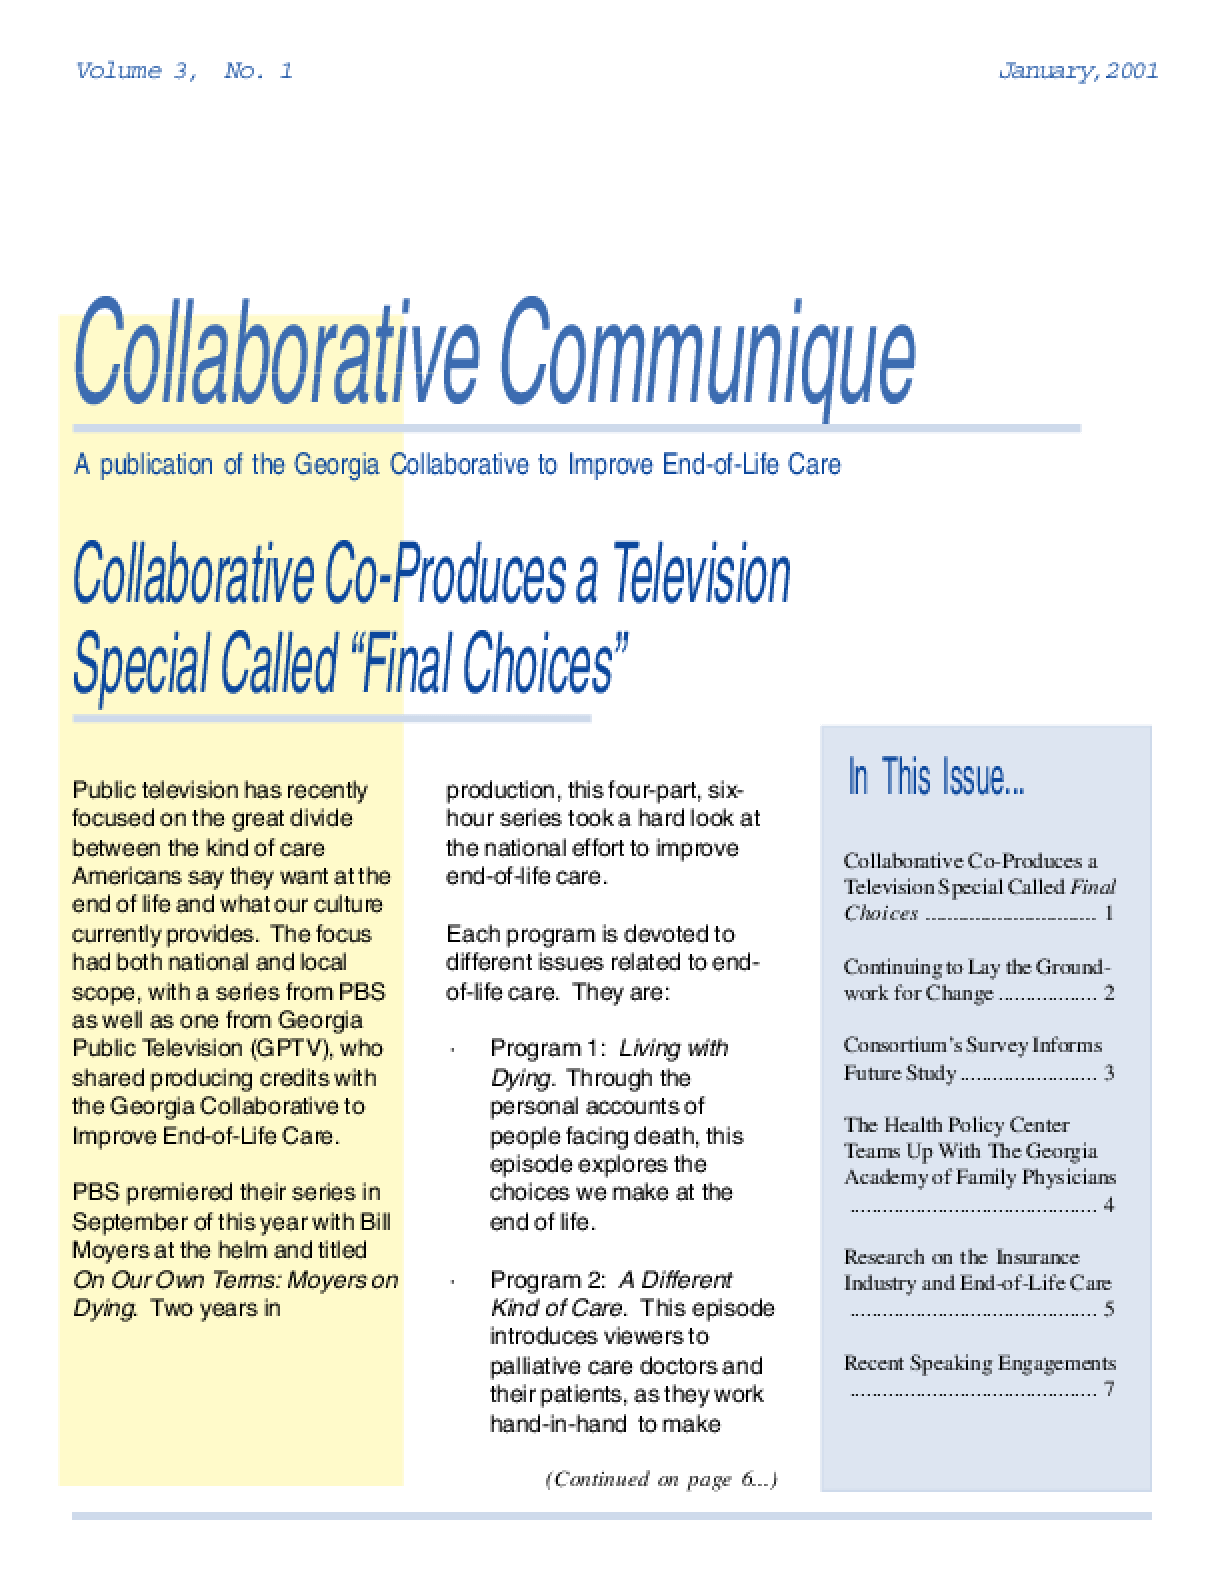 Collaborative Communique: A publication of the Georgia Collaborative to Improve End-of-Life Care